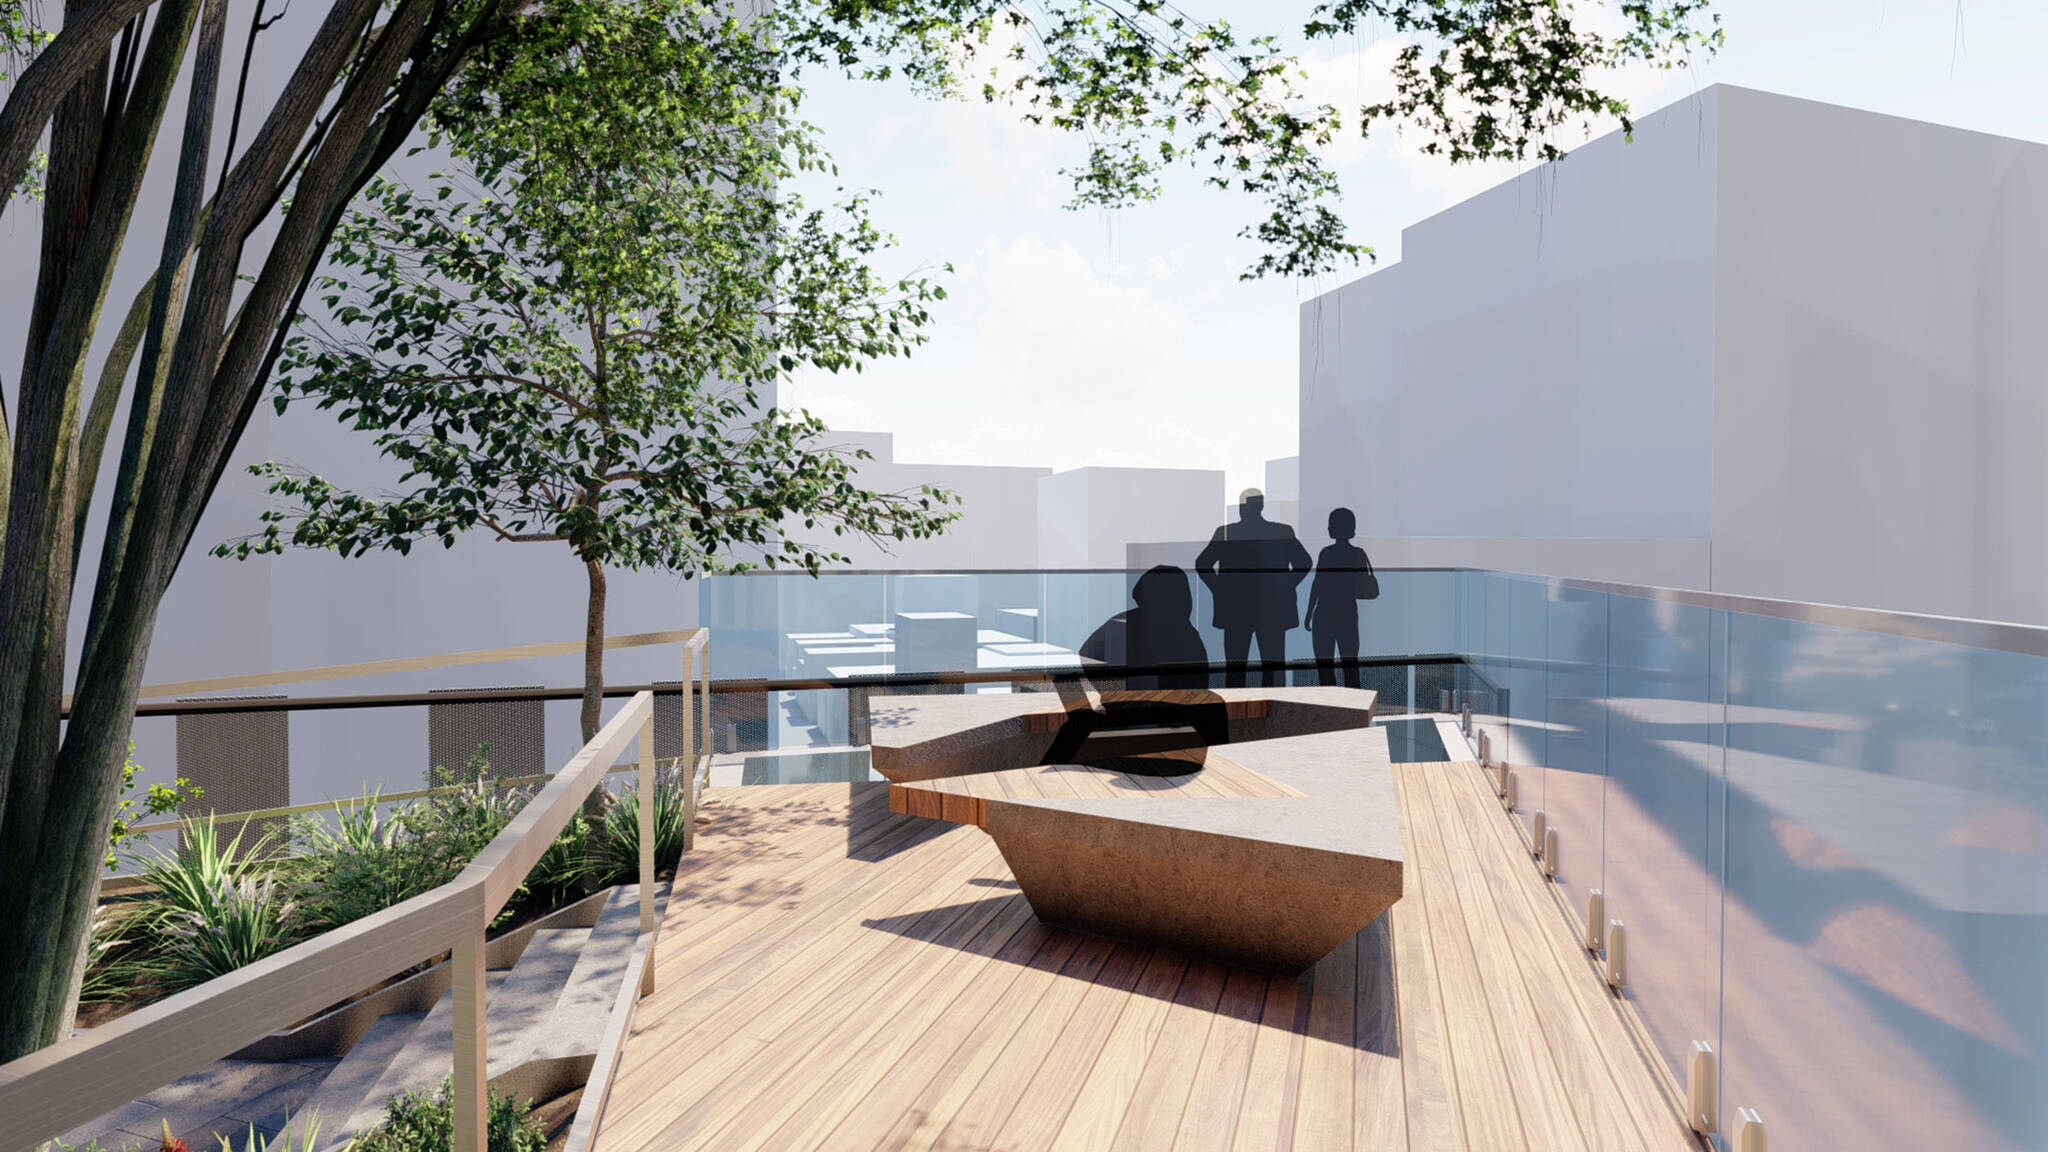 Boardwalk on the terrace of the San Francisco modular project located at 570 Market Street on the Financial District of San Francisco, California designed by the architecture studio Danny Forster & Architecture